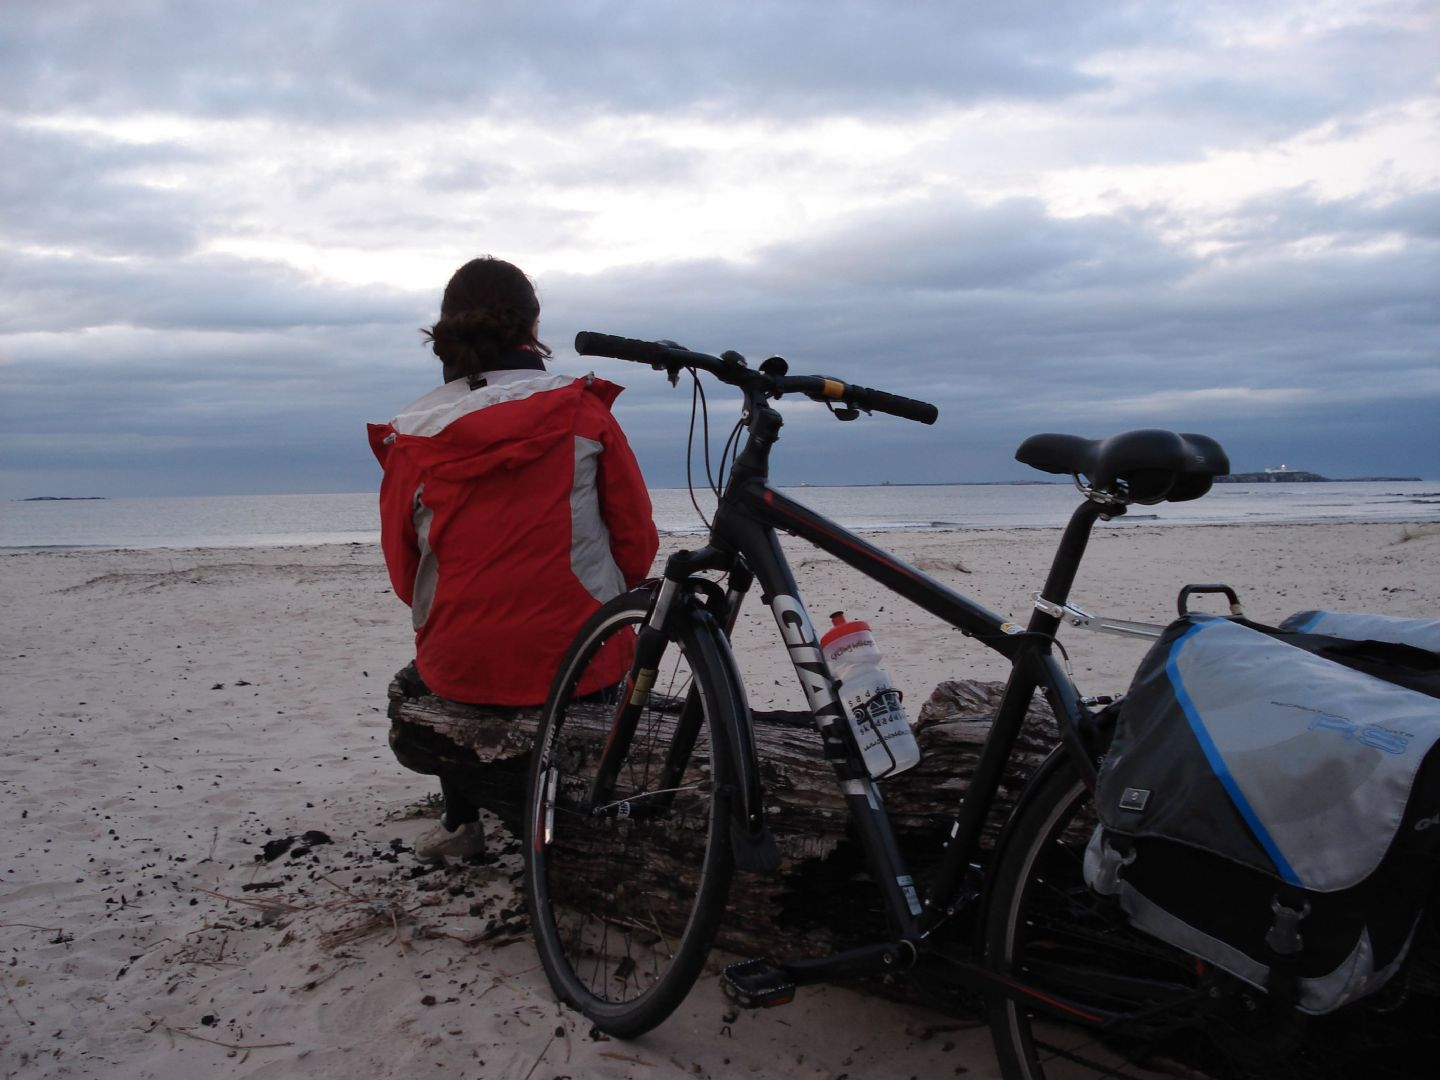 _Holiday.530.4712.jpg - UK - Northumberland Coast - 4 Days Cycling - Self-Guided Family Cycling Holiday - Family Cycling